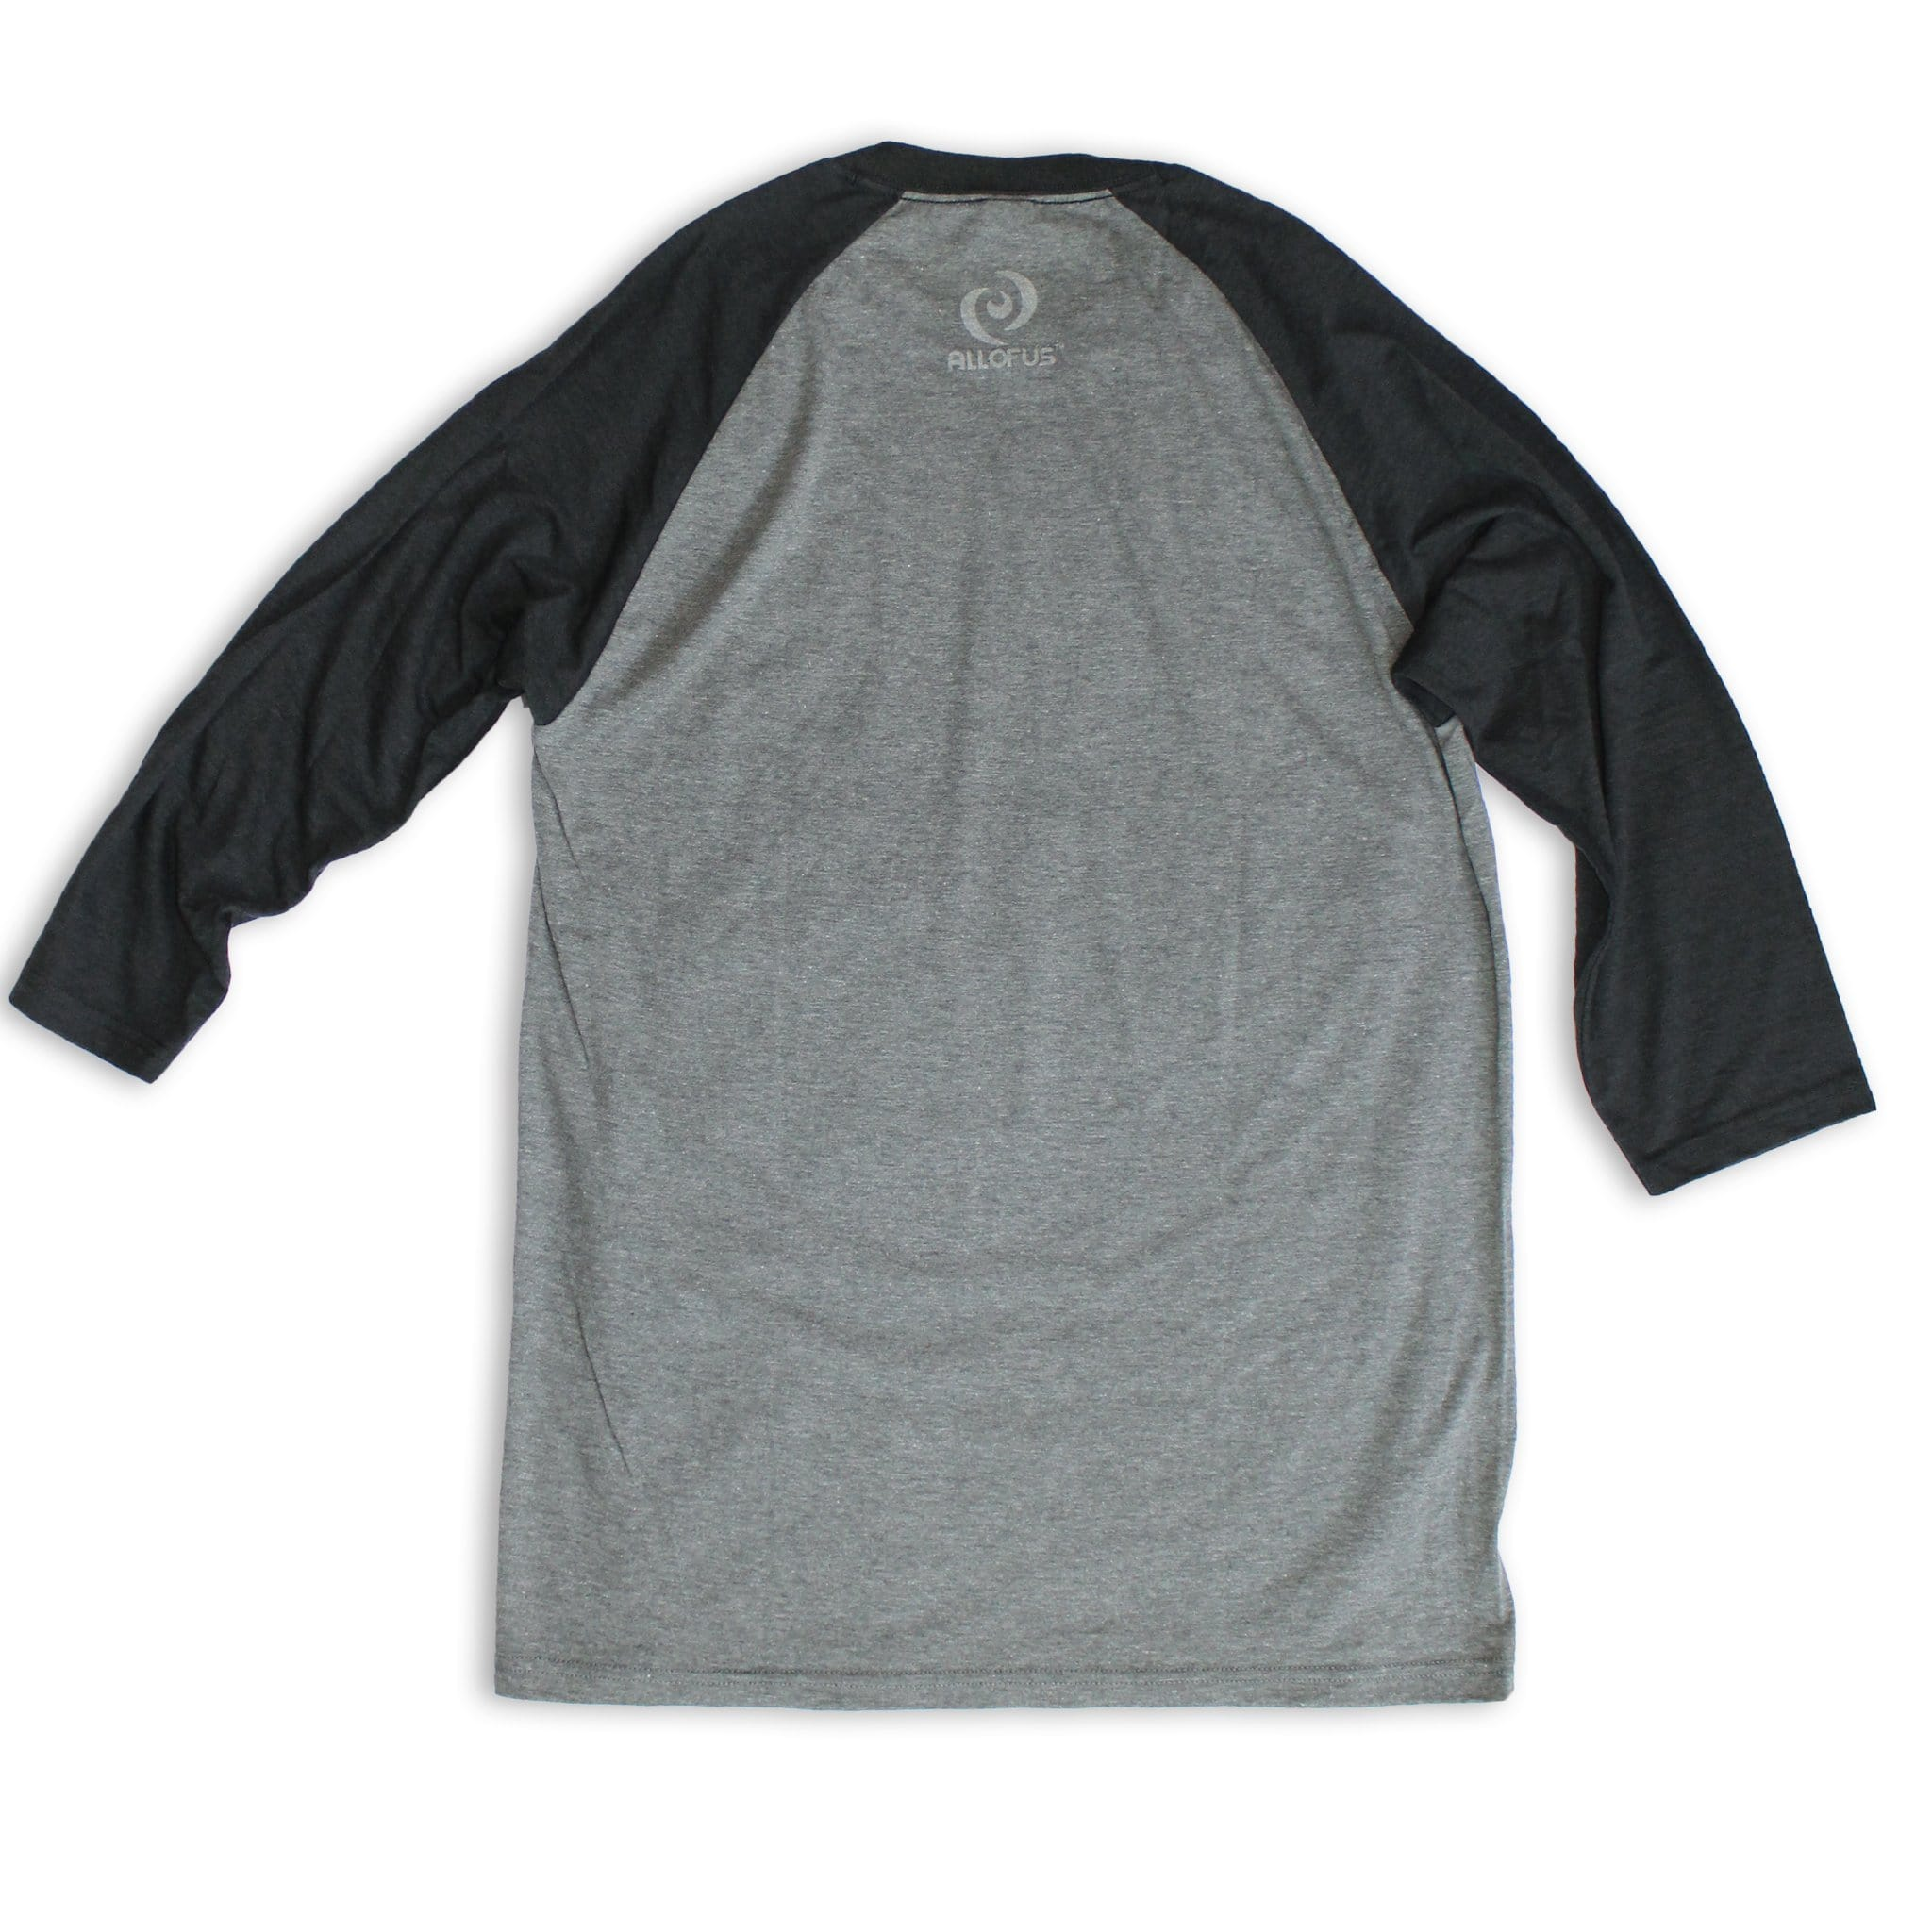 f6b7c3466 Men's All of Us Tri Blend ¾ Sleeve Raglan Jersey